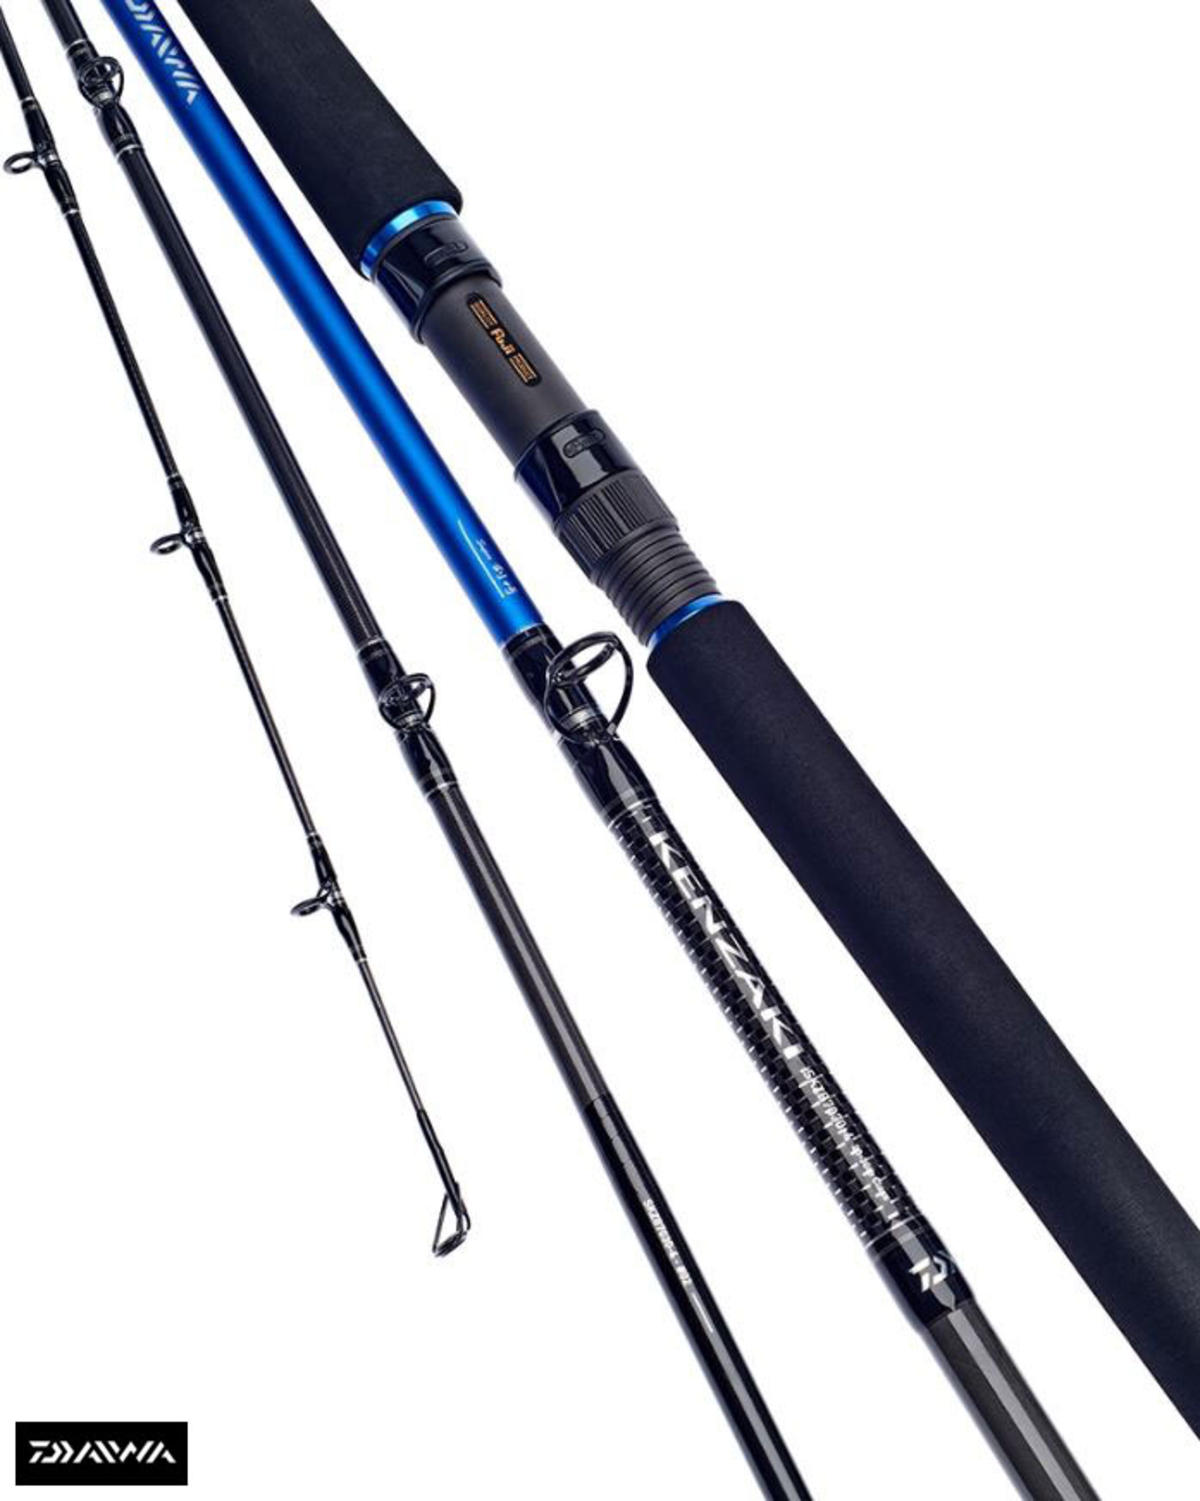 Ex Display Daiwa Super Kenzaki Travel Boat Rod 7ft / 20-30lb / 4pc - SKZB7030-4-